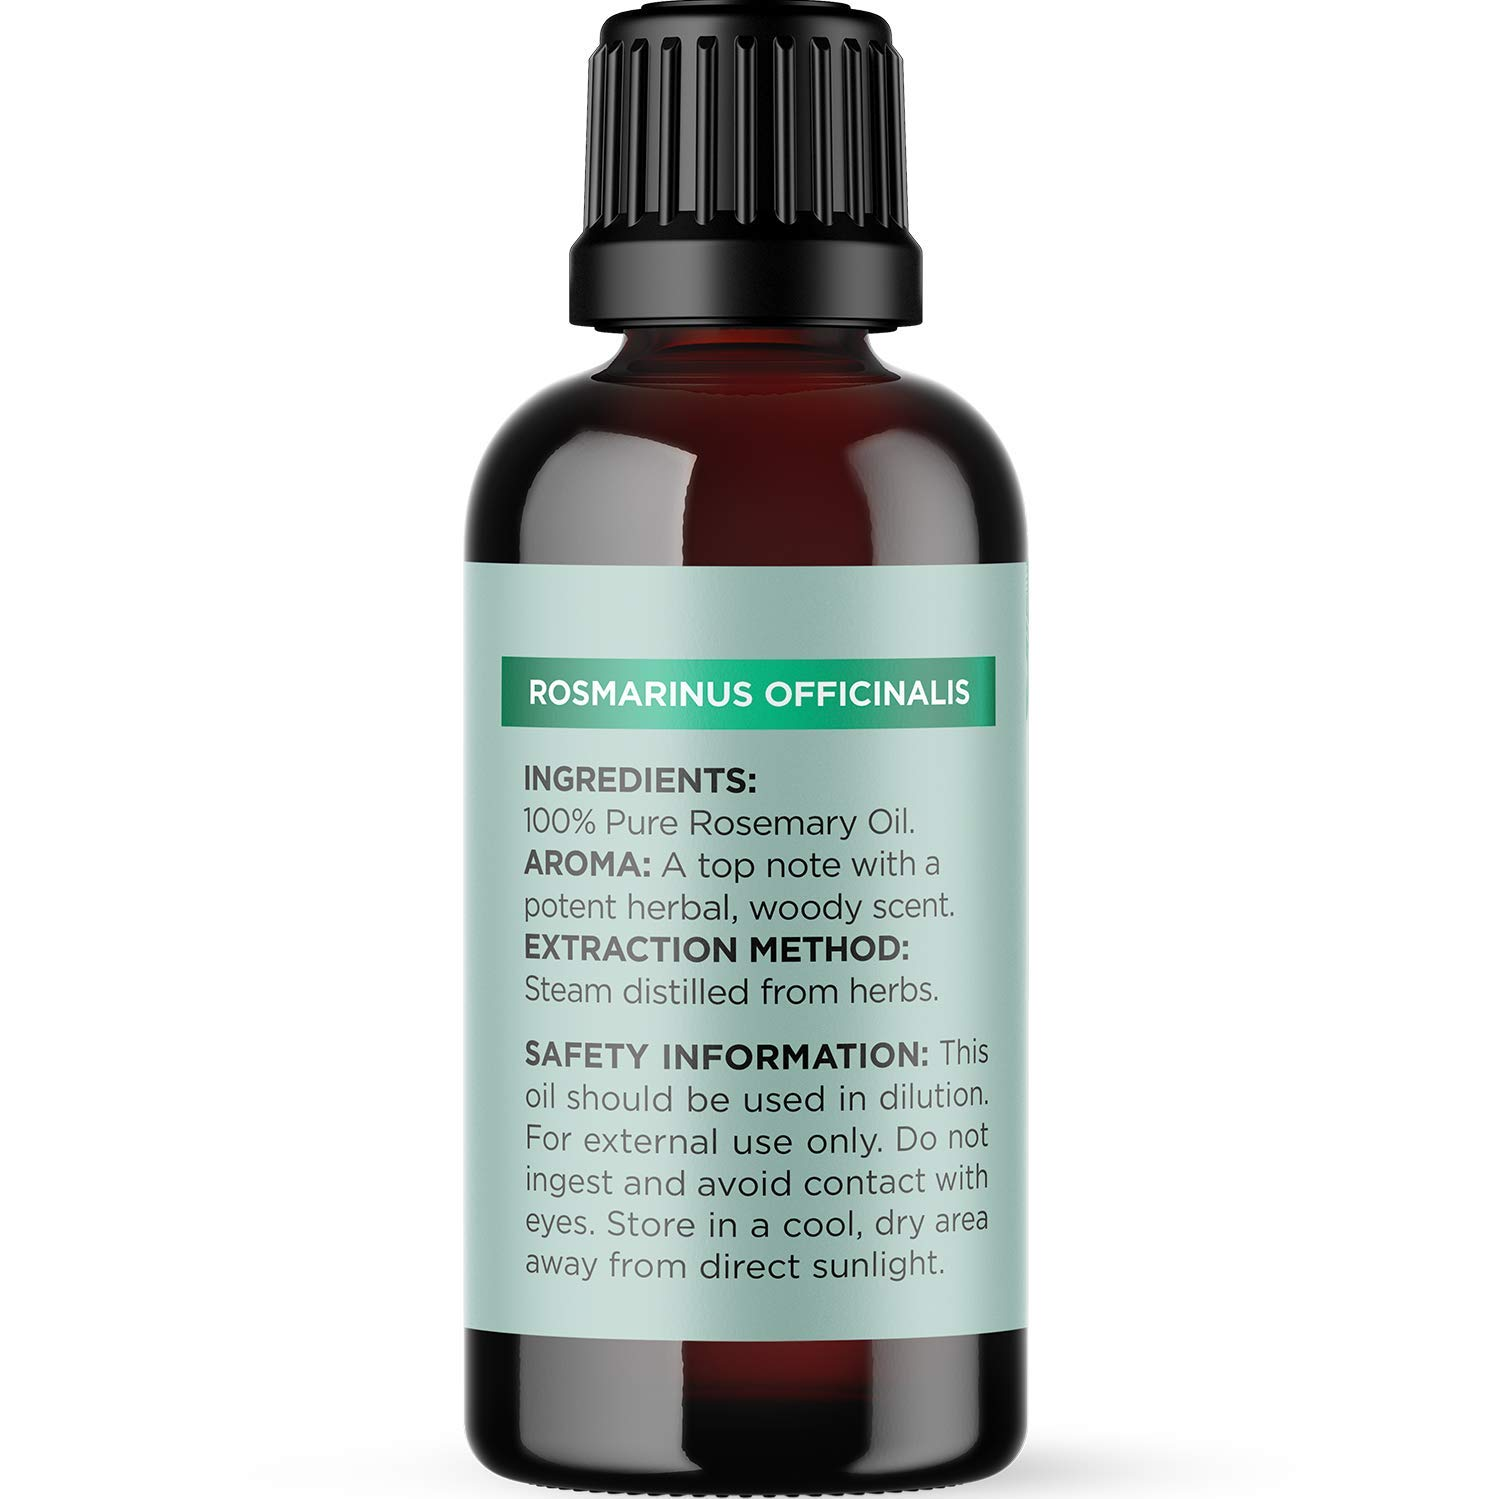 100% Pure Rosemary Essential Oil for Therapeutic Aromatherapy Stimulating Scalp Treatment for Healthy Hair Growth Anti Aging Antioxidant Ancient Beauty Elixir Natural Skin Care for Acne and Wrinkles: Beauty